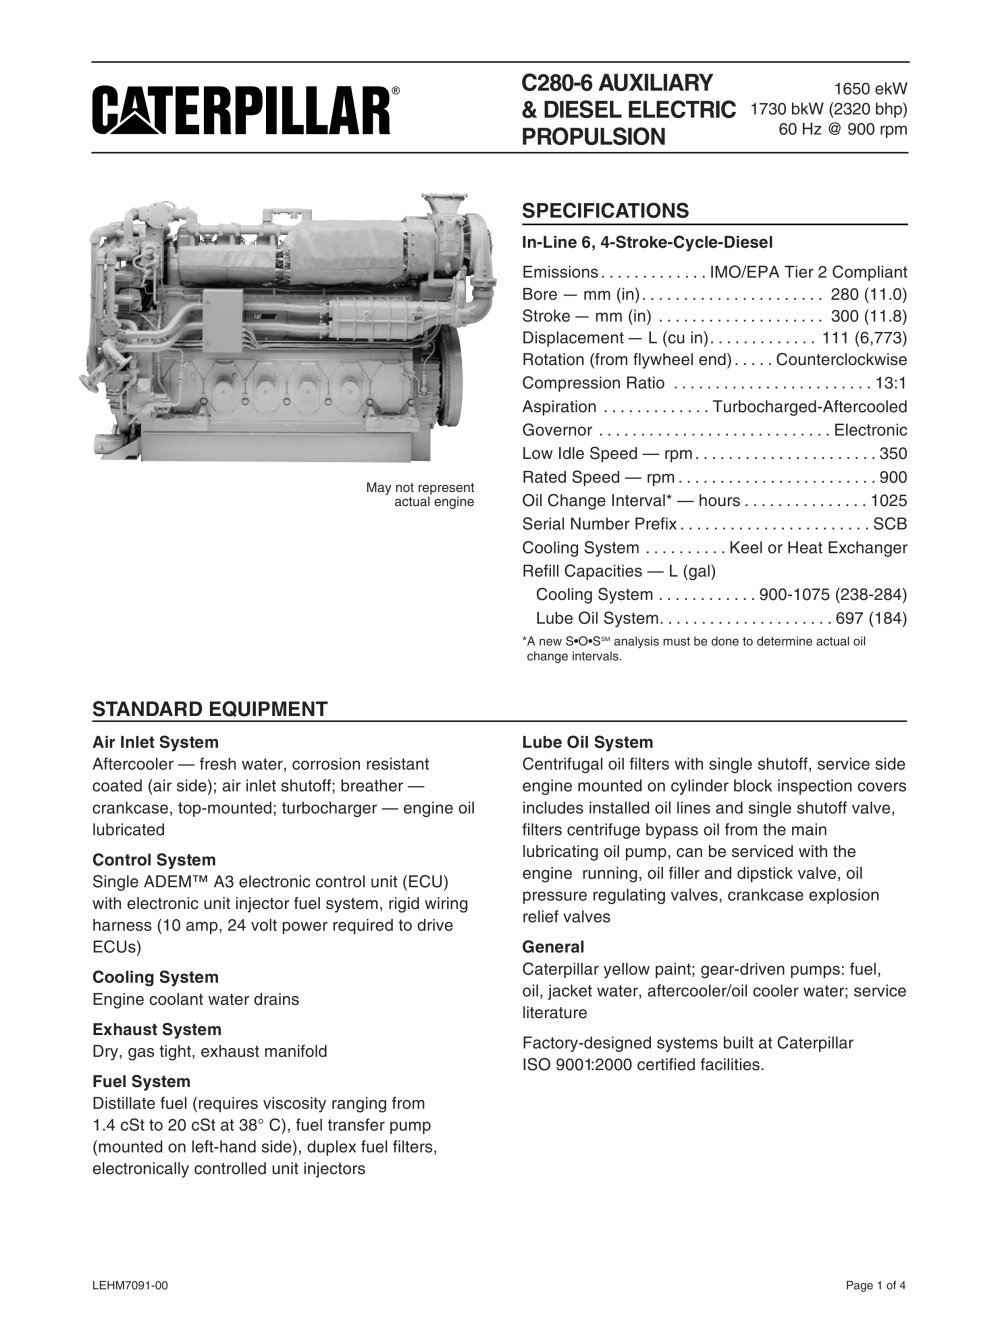 Cat C280-6 Genset Spec Sheet - 1 / 16 Pages